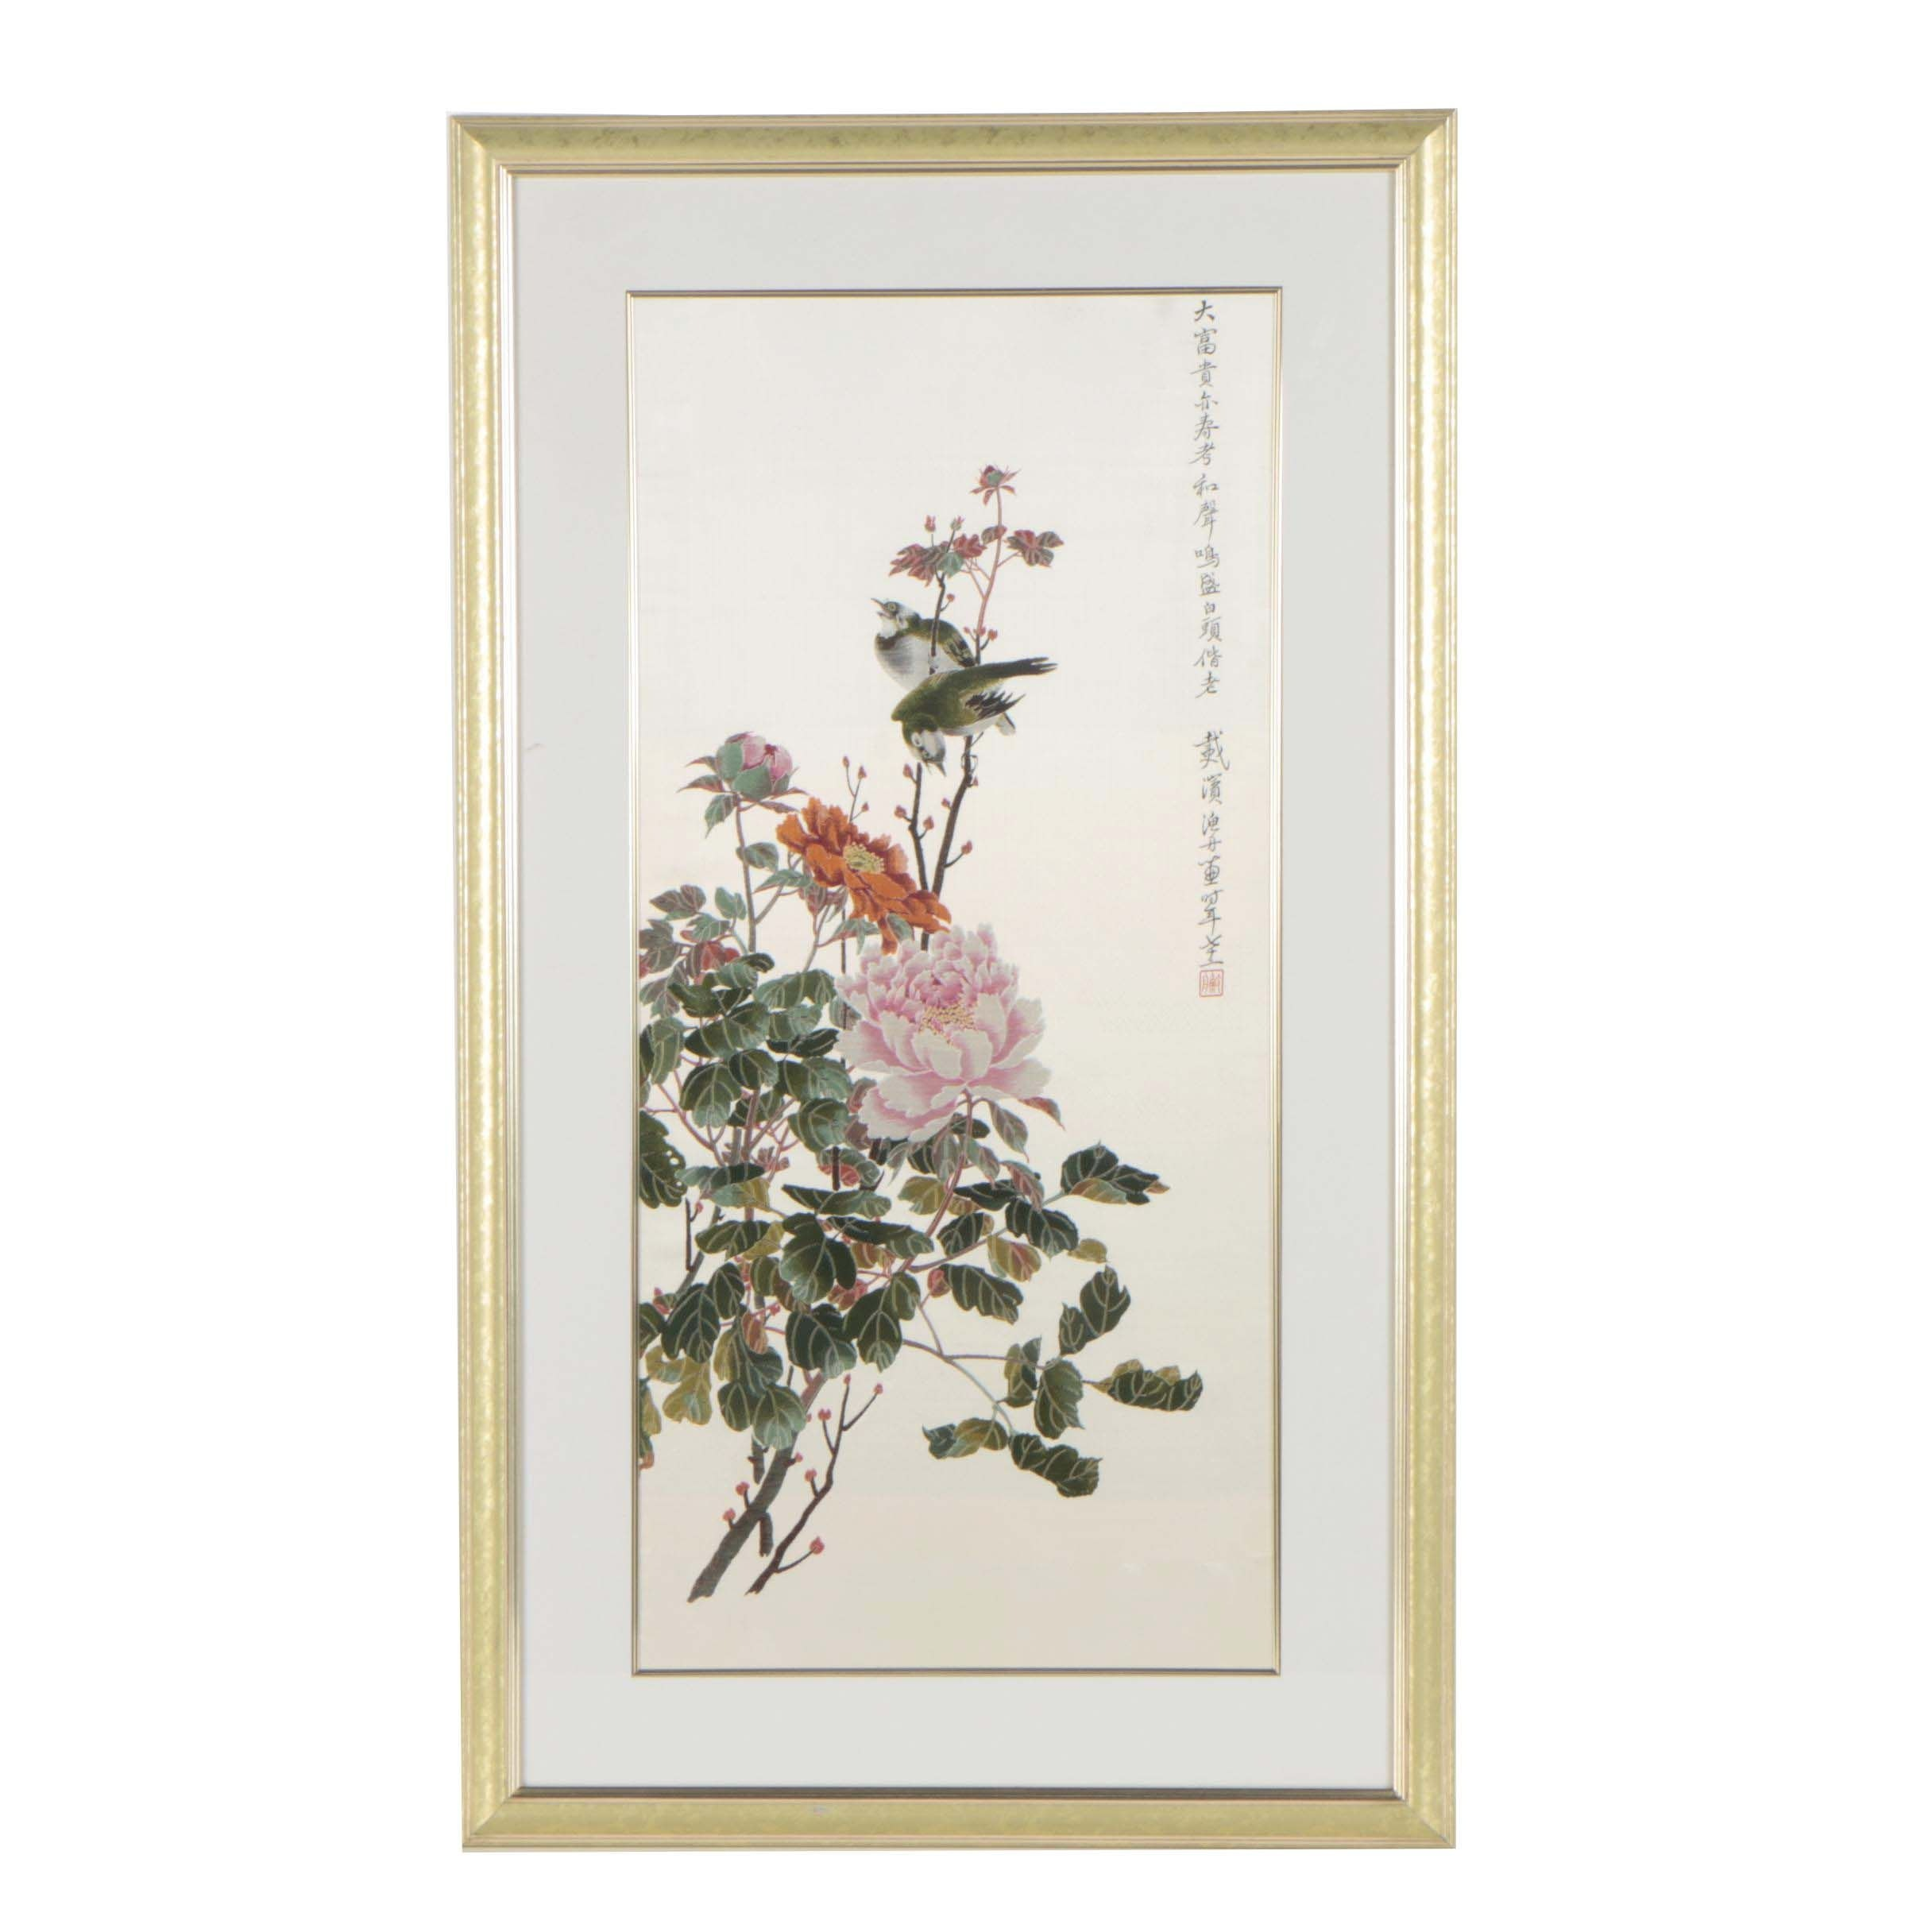 Chinese Flower and Bird Embroidery